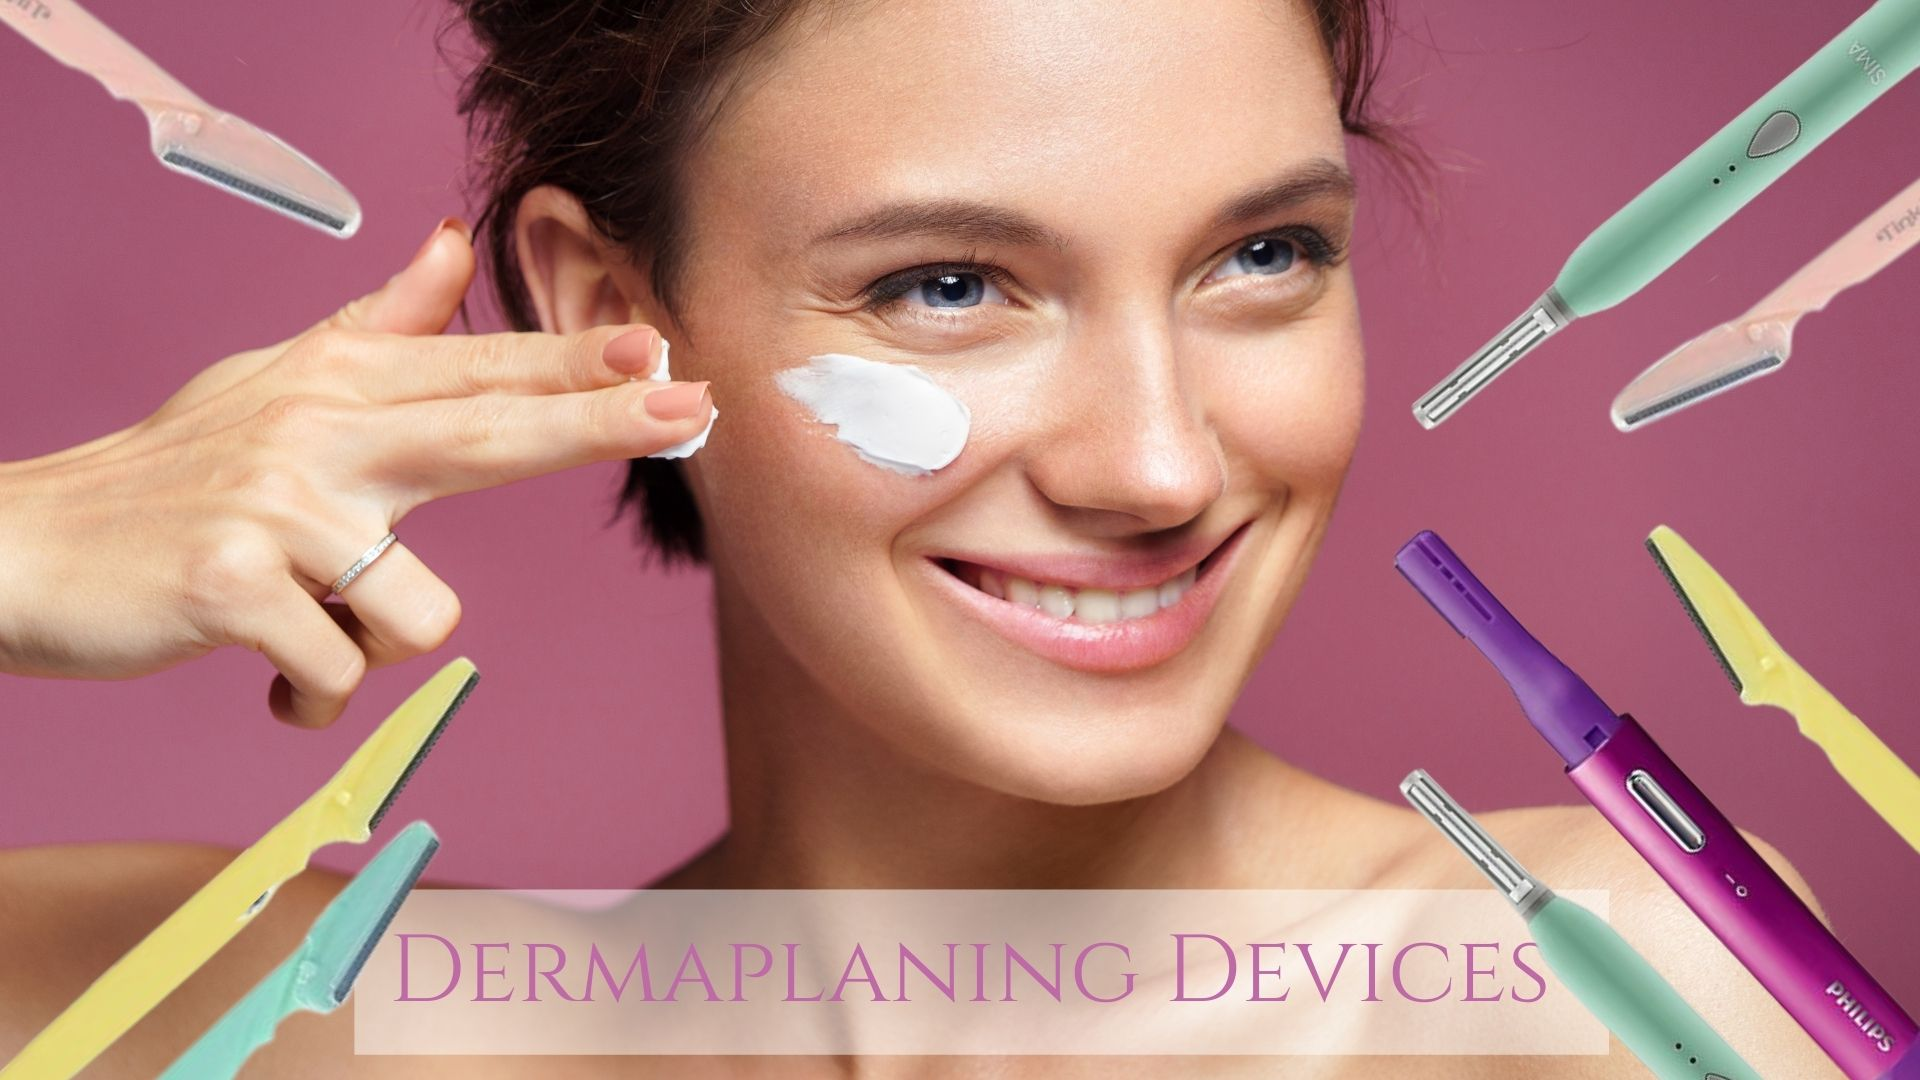 Dermaplaning Devices